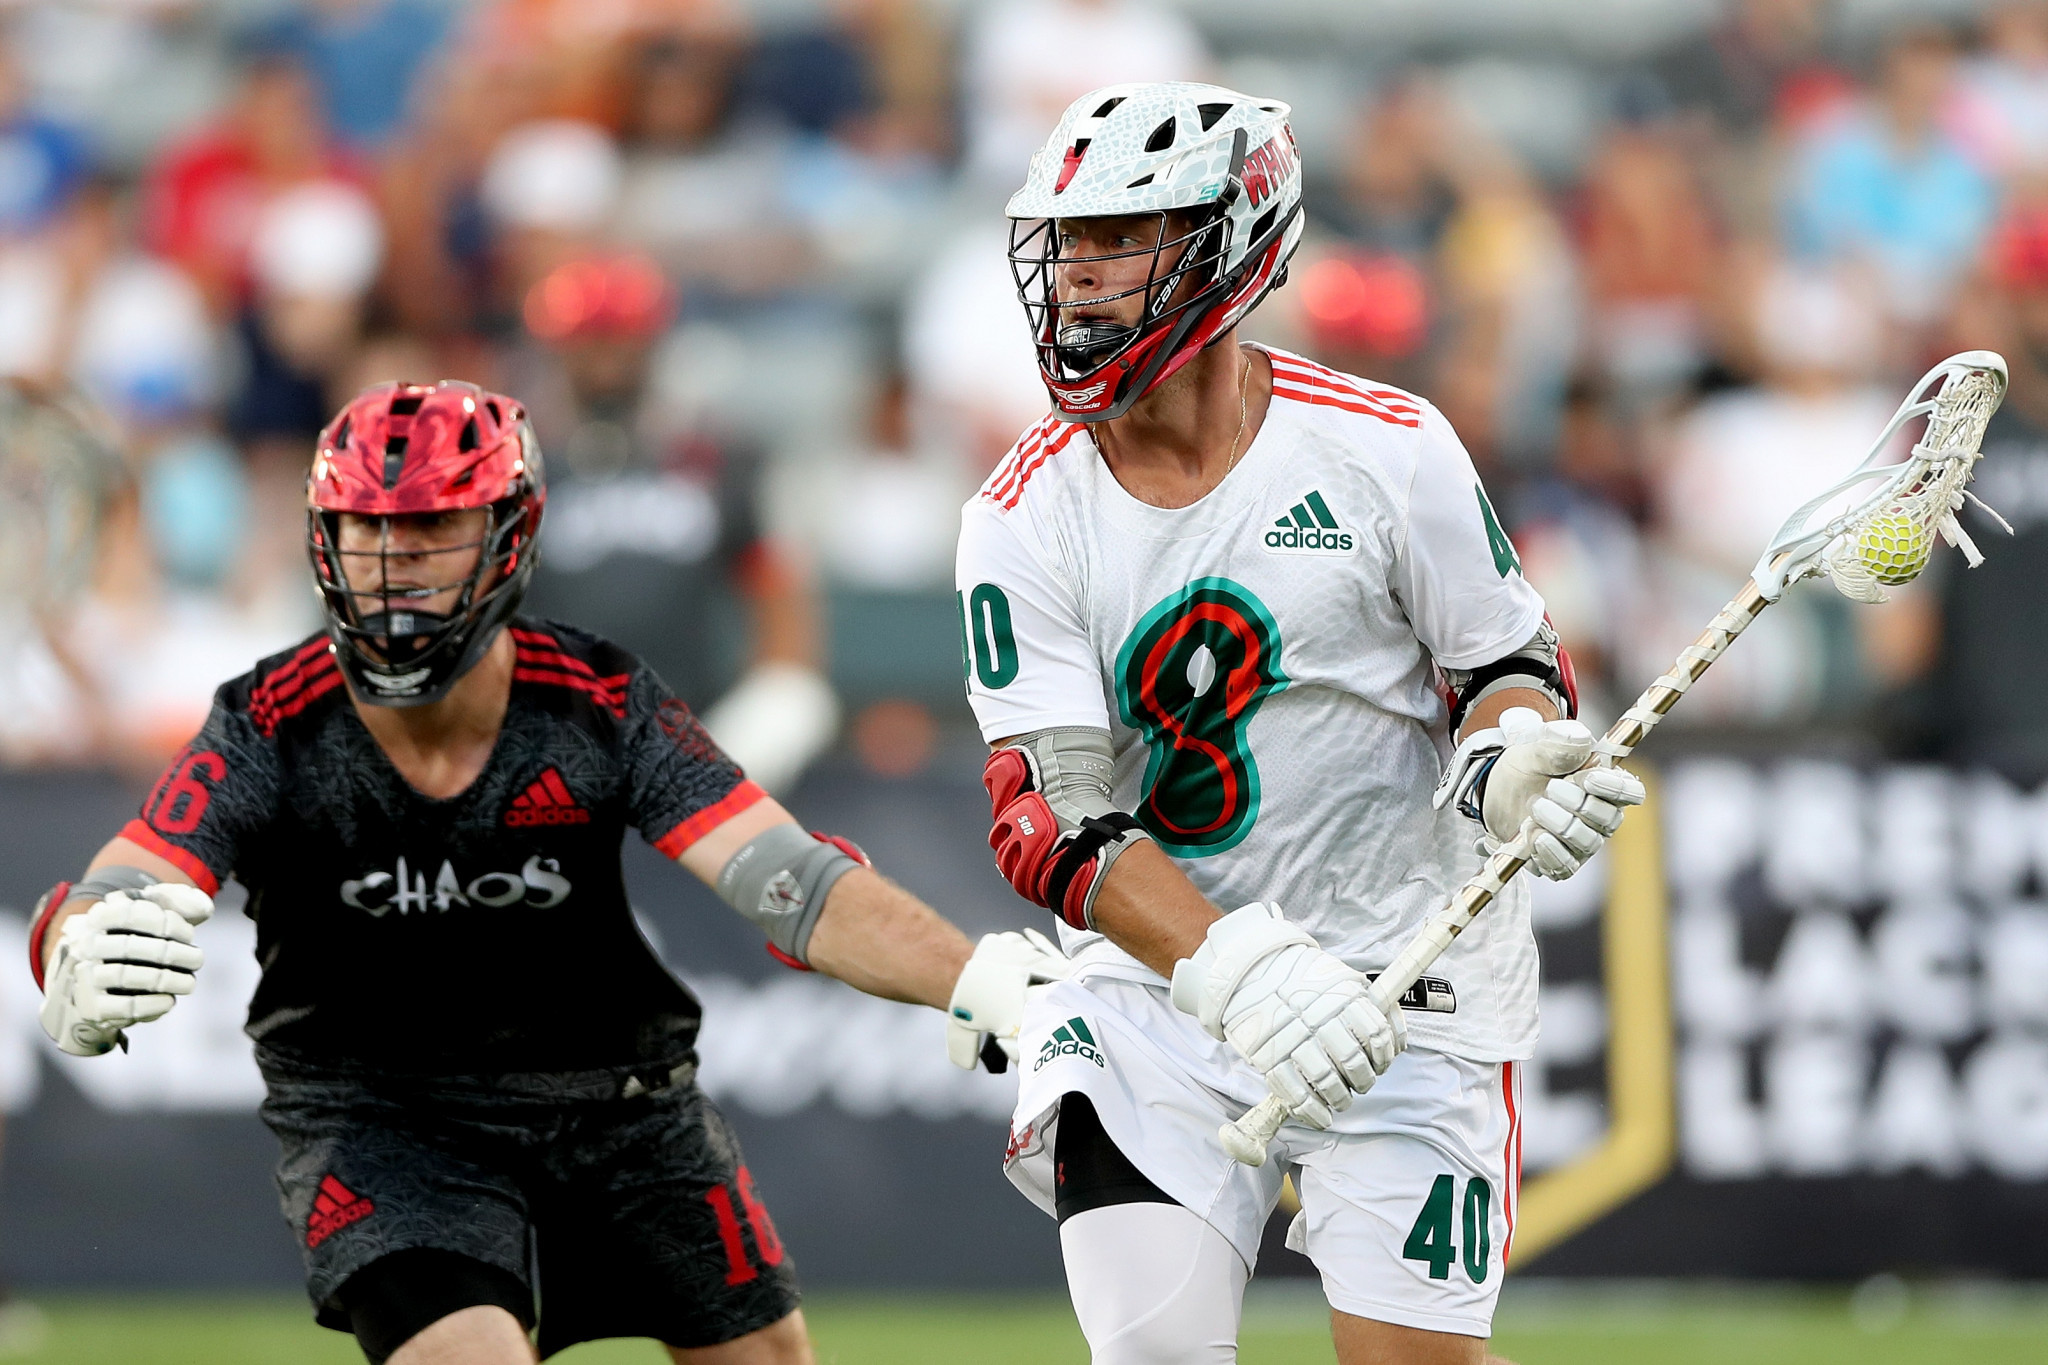 World Lacrosse appoint working group to help set up Hall of Fame